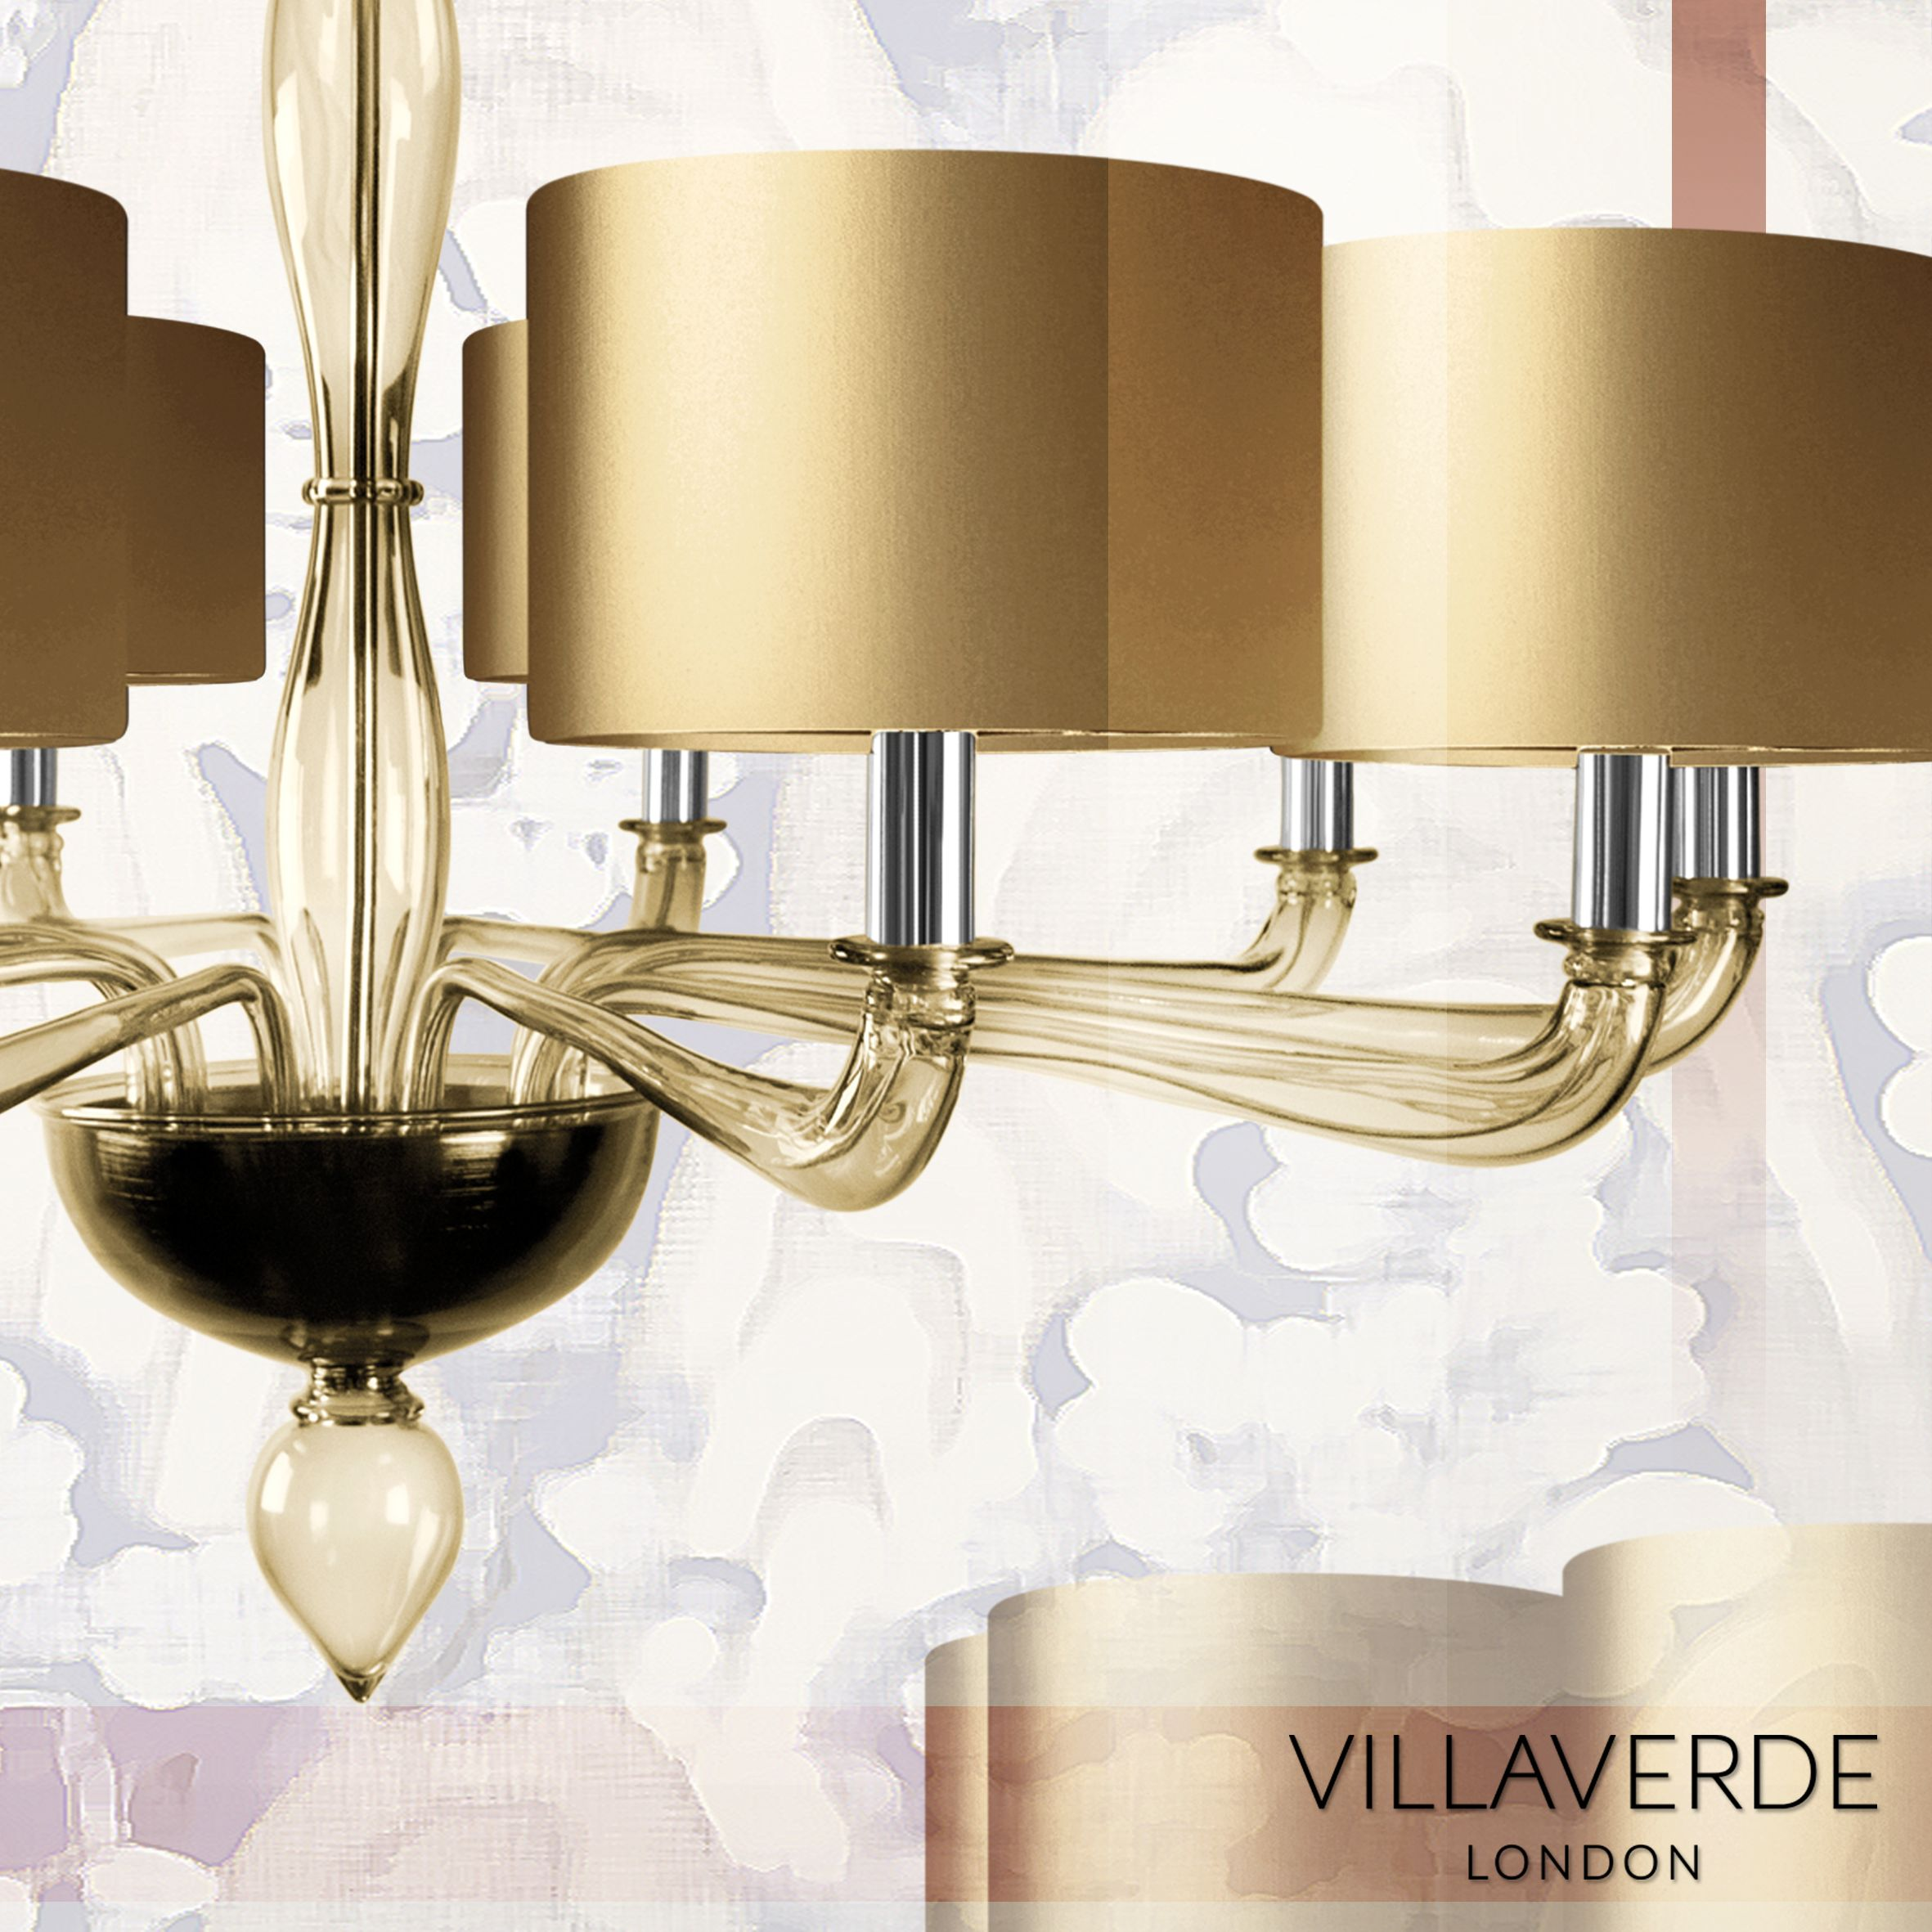 Villaverde london beautiful detail and the finest murano glass villaverde london beautiful detail and the finest murano glass luna murano chandelier as aloadofball Gallery